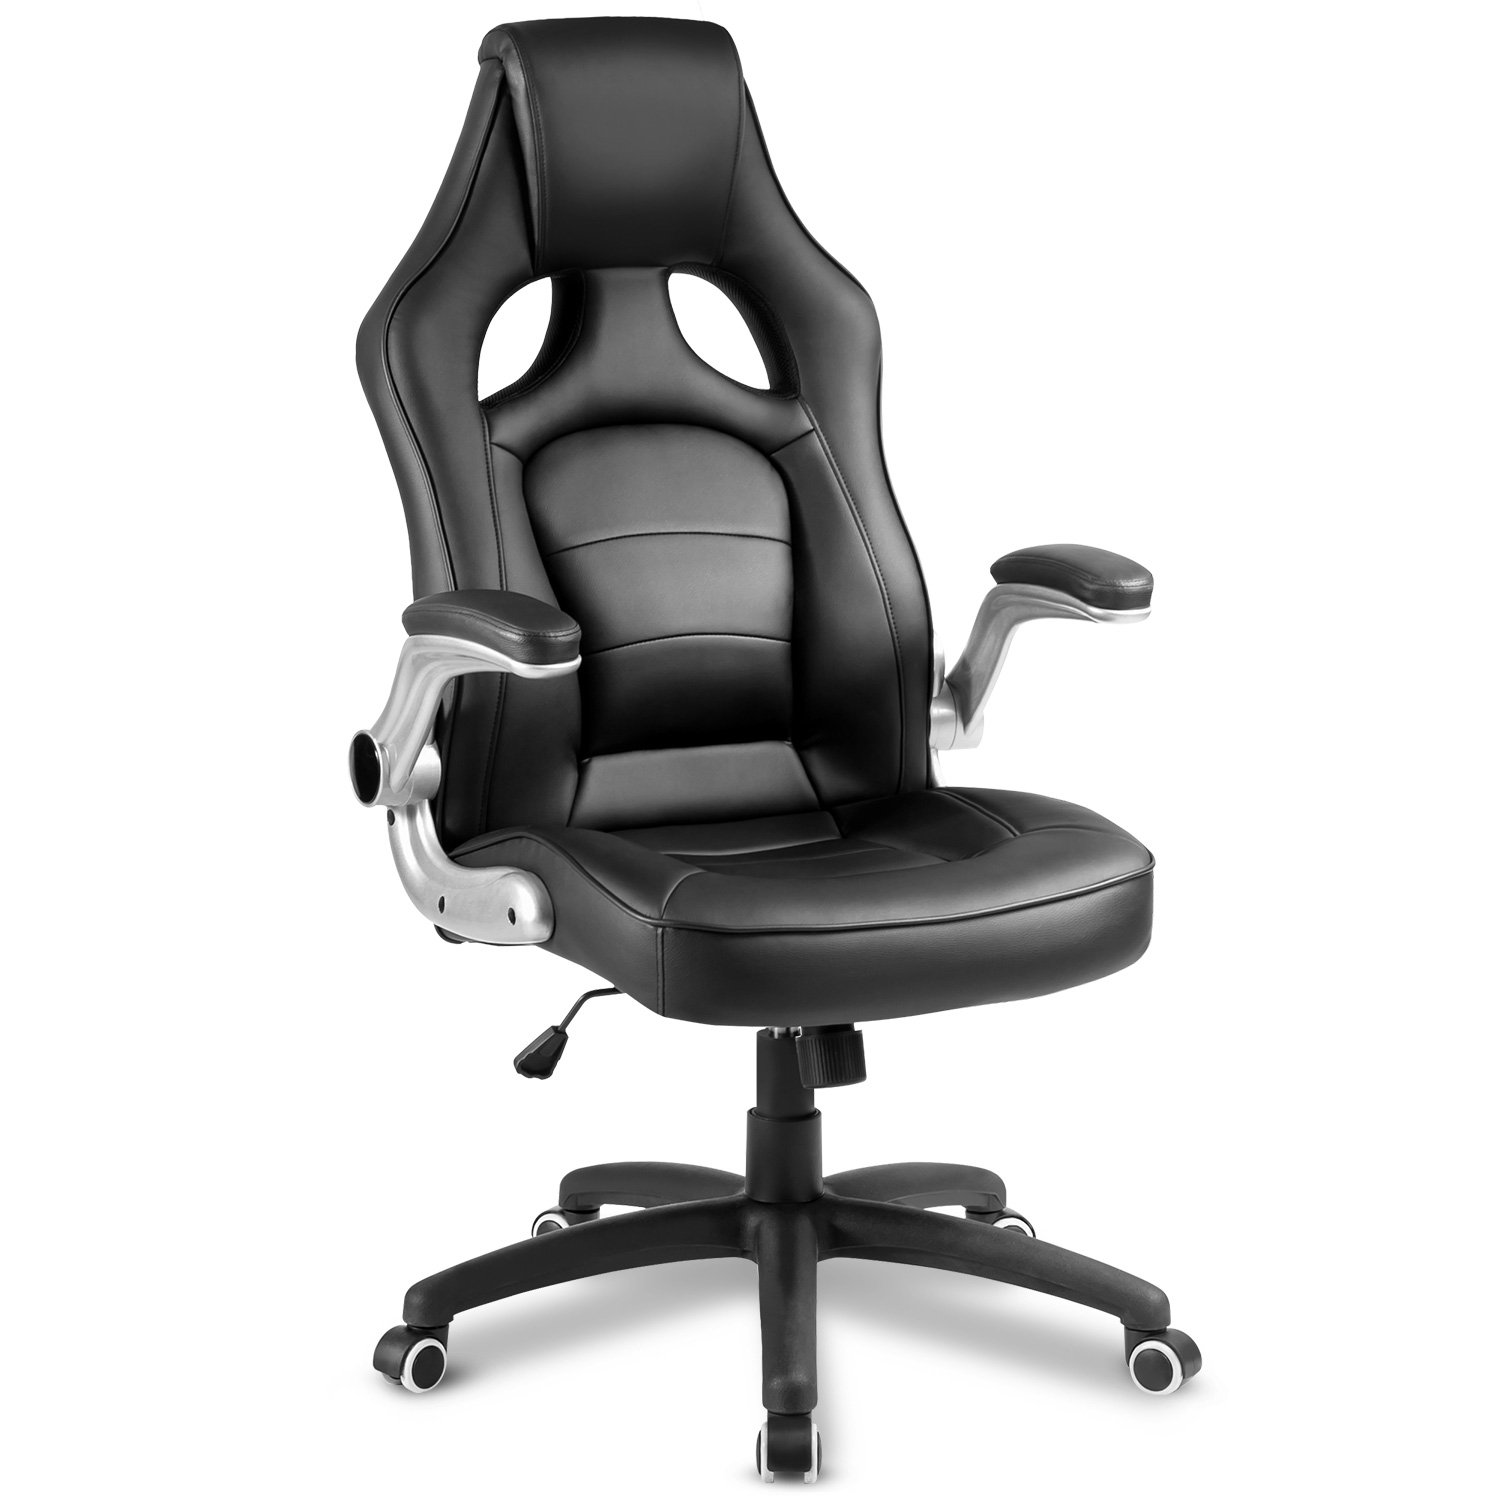 ModernLuxe Ergonomic Gaming Chair Racing Style Office Chair PU Leather Swivel Desk Chair (Black)